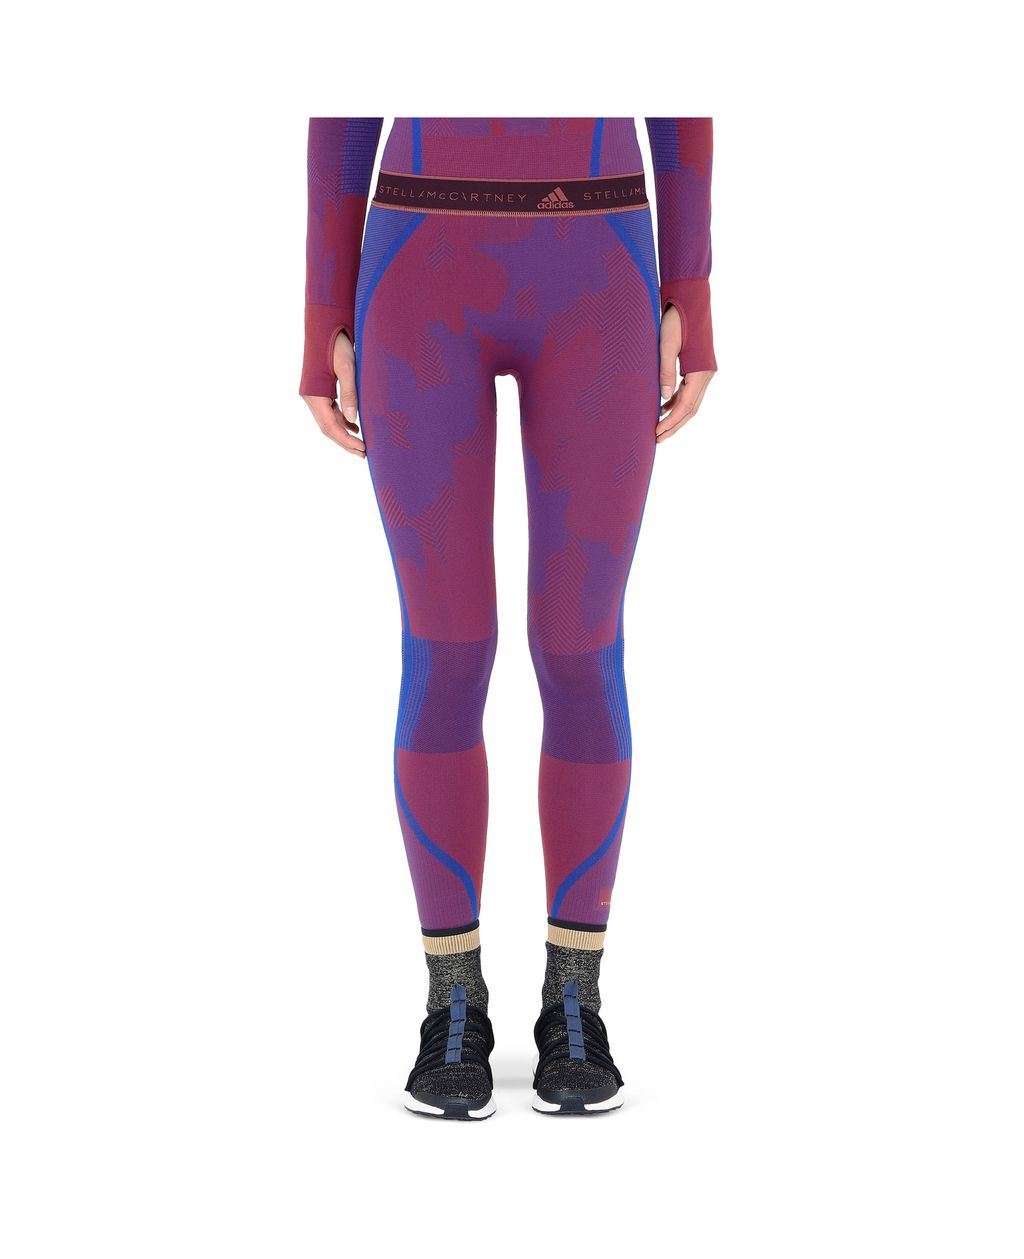 Seamless Running Tights - ADIDAS by STELLA McCARTNEY